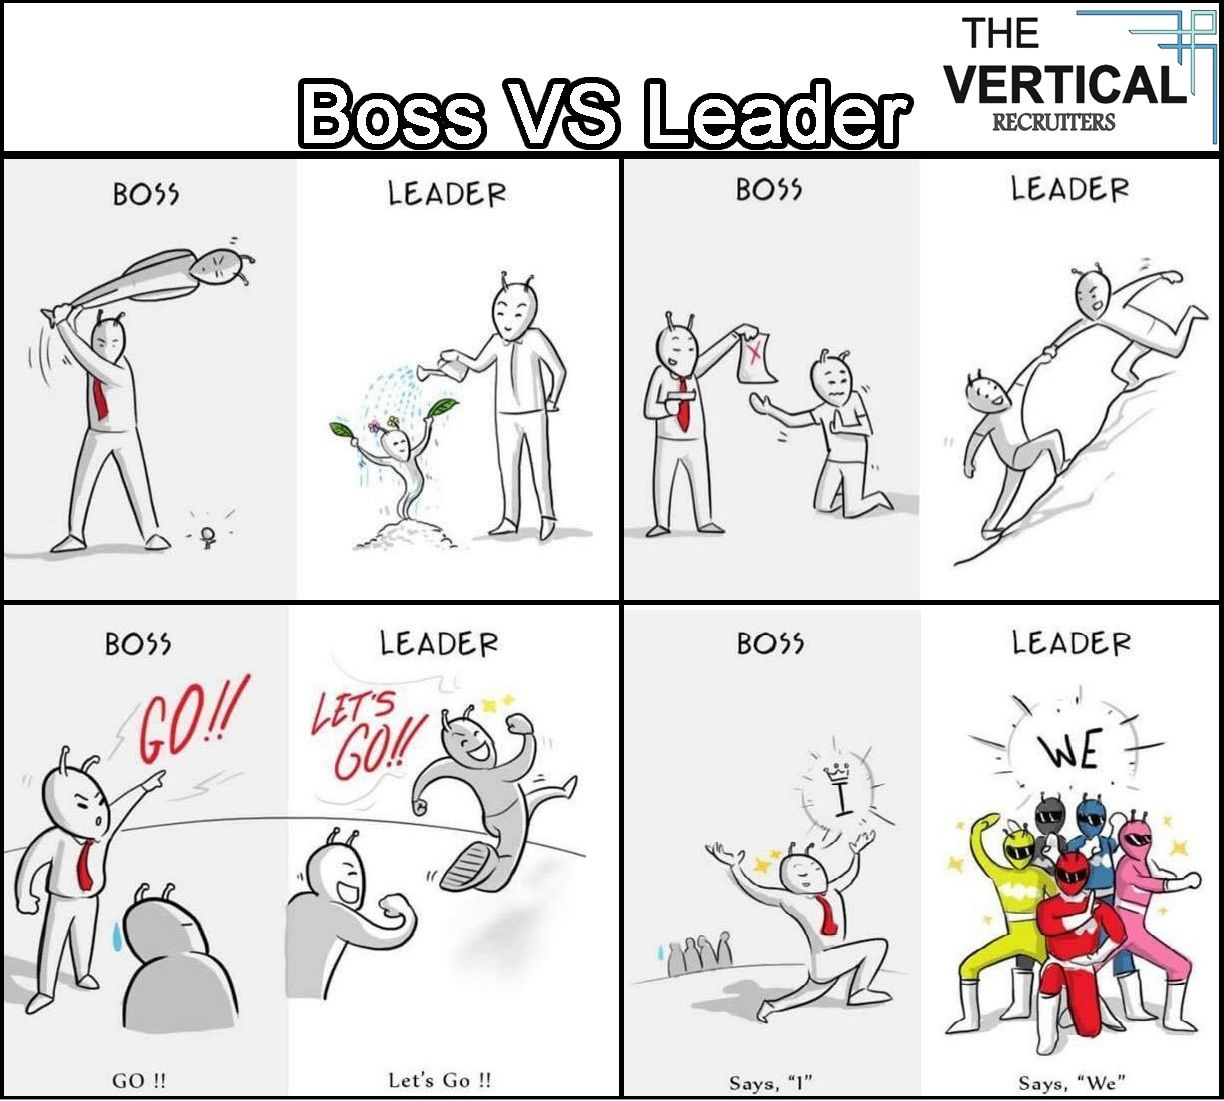 boss vs team leader vertical recruiters pvt boss vs team leader